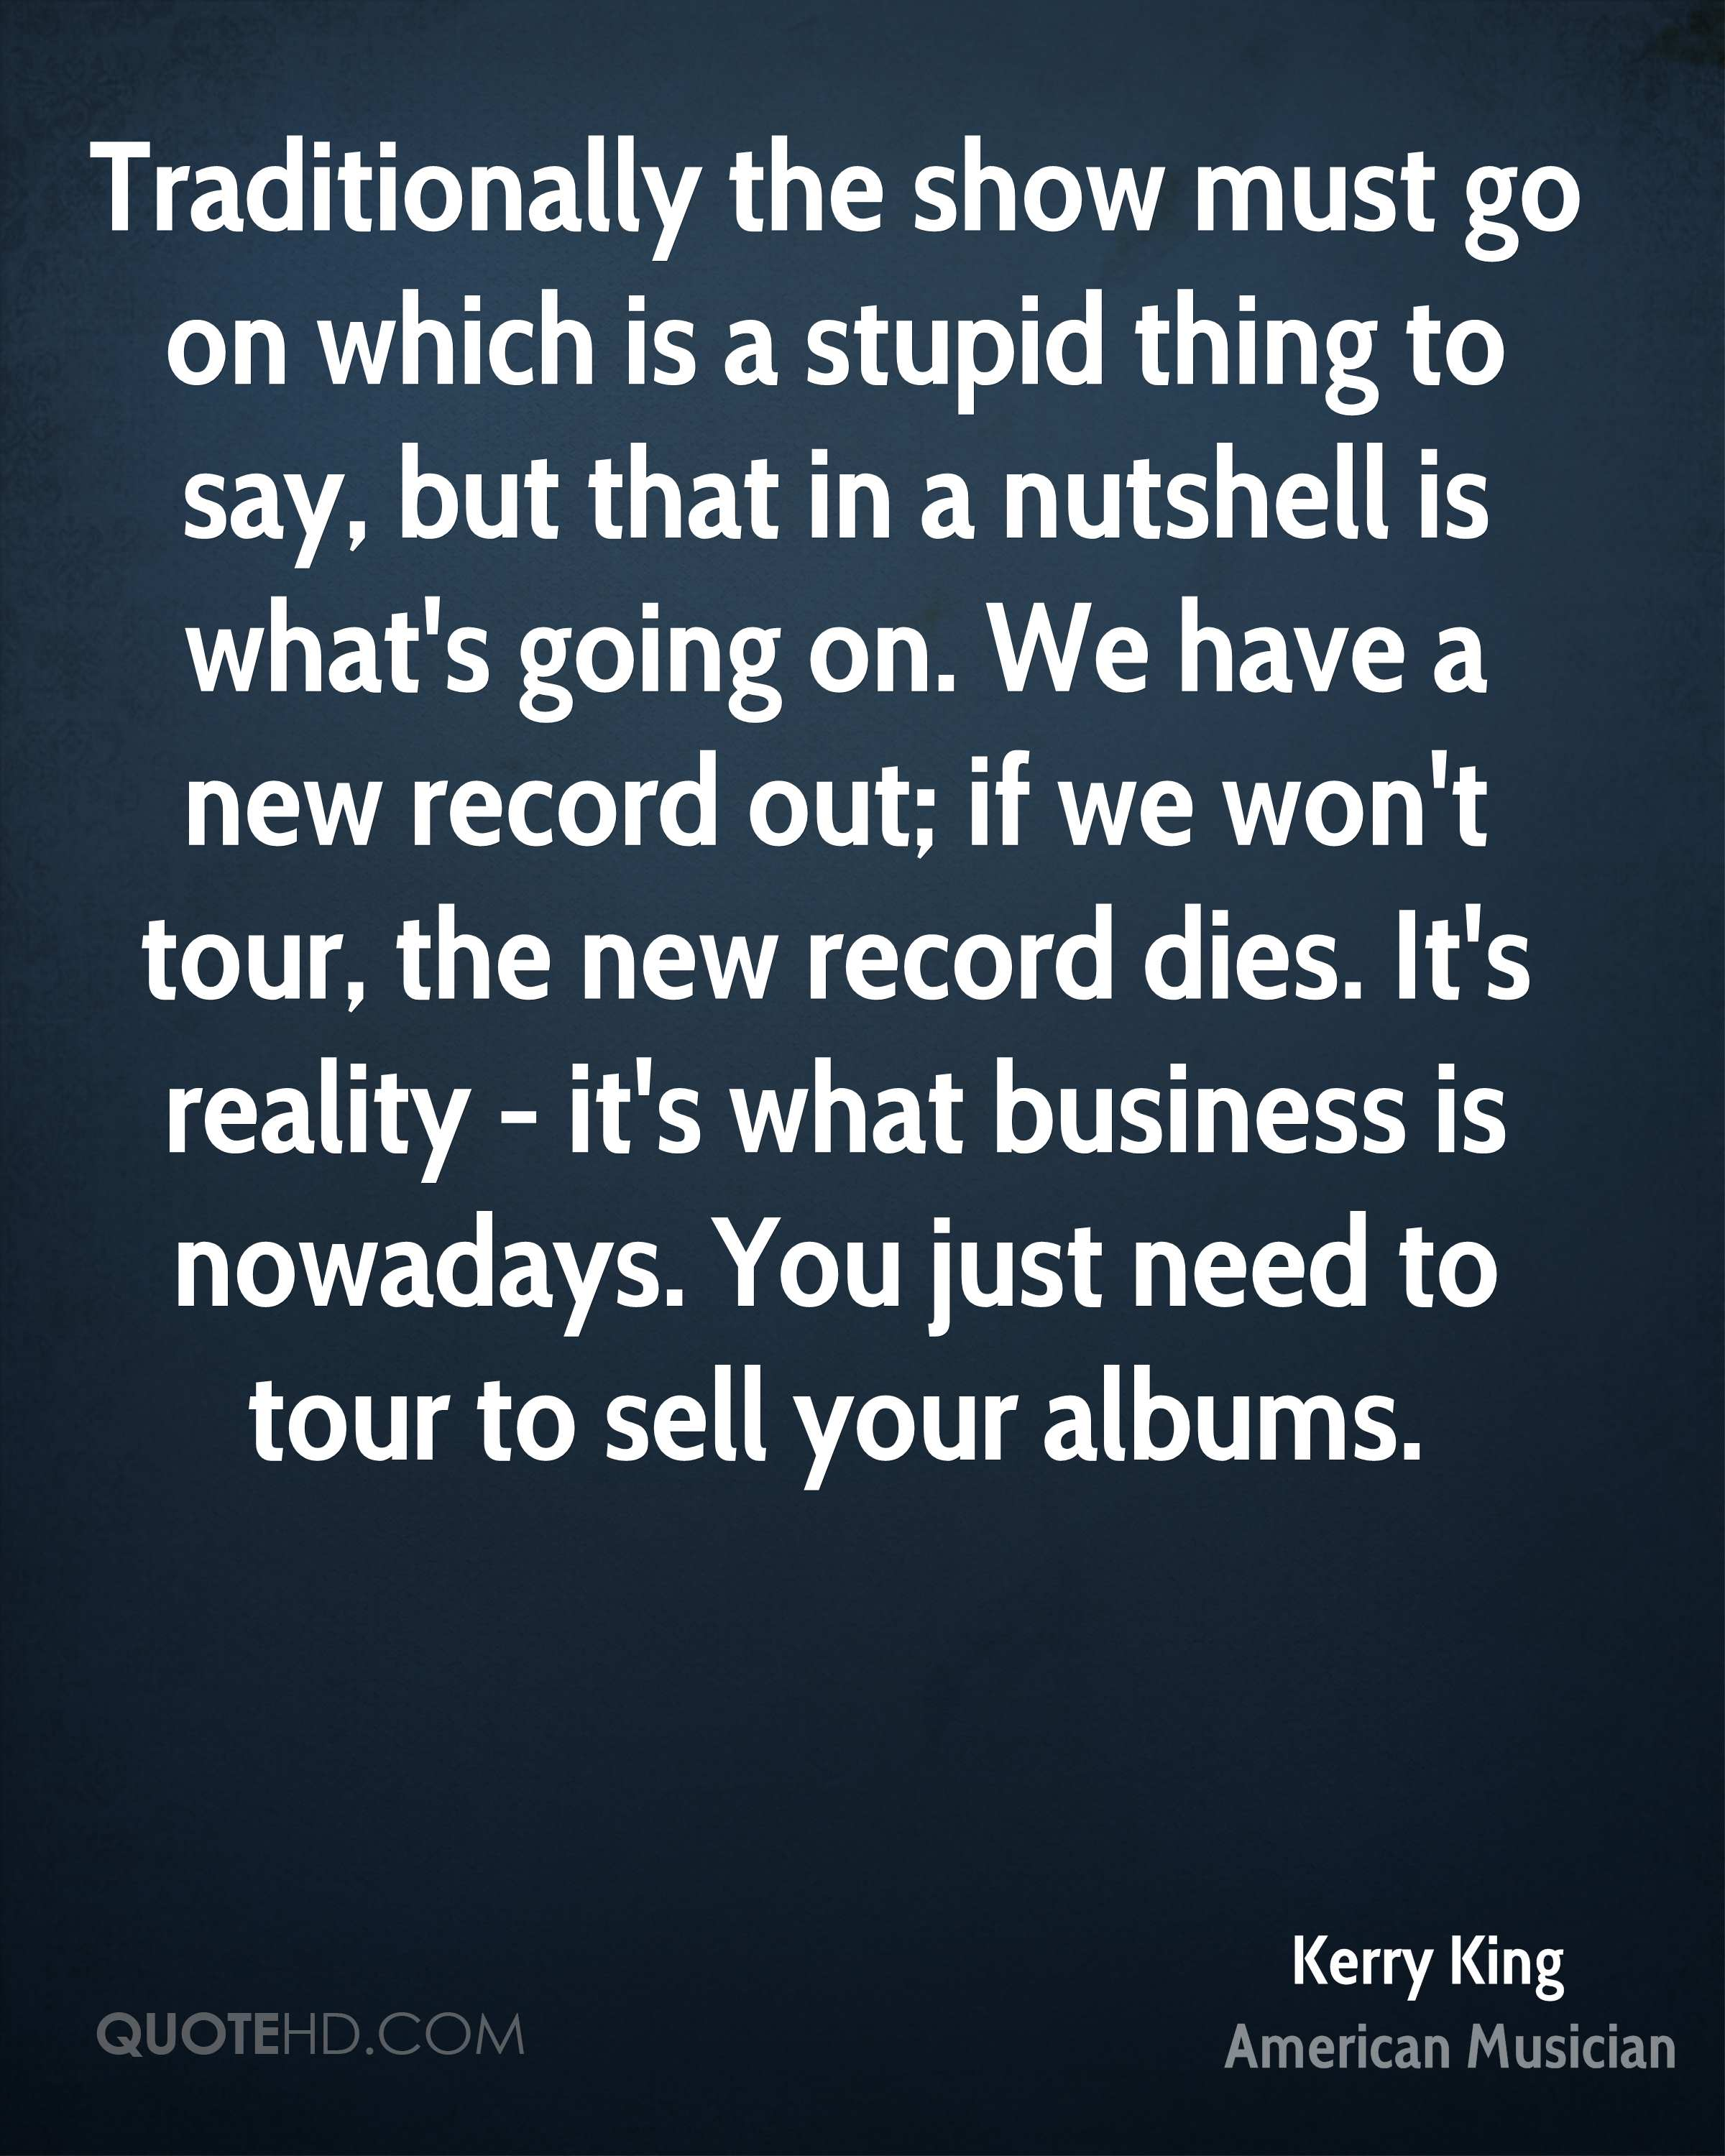 Traditionally the show must go on which is a stupid thing to say, but that in a nutshell is what's going on. We have a new record out; if we won't tour, the new record dies. It's reality - it's what business is nowadays. You just need to tour to sell your albums.